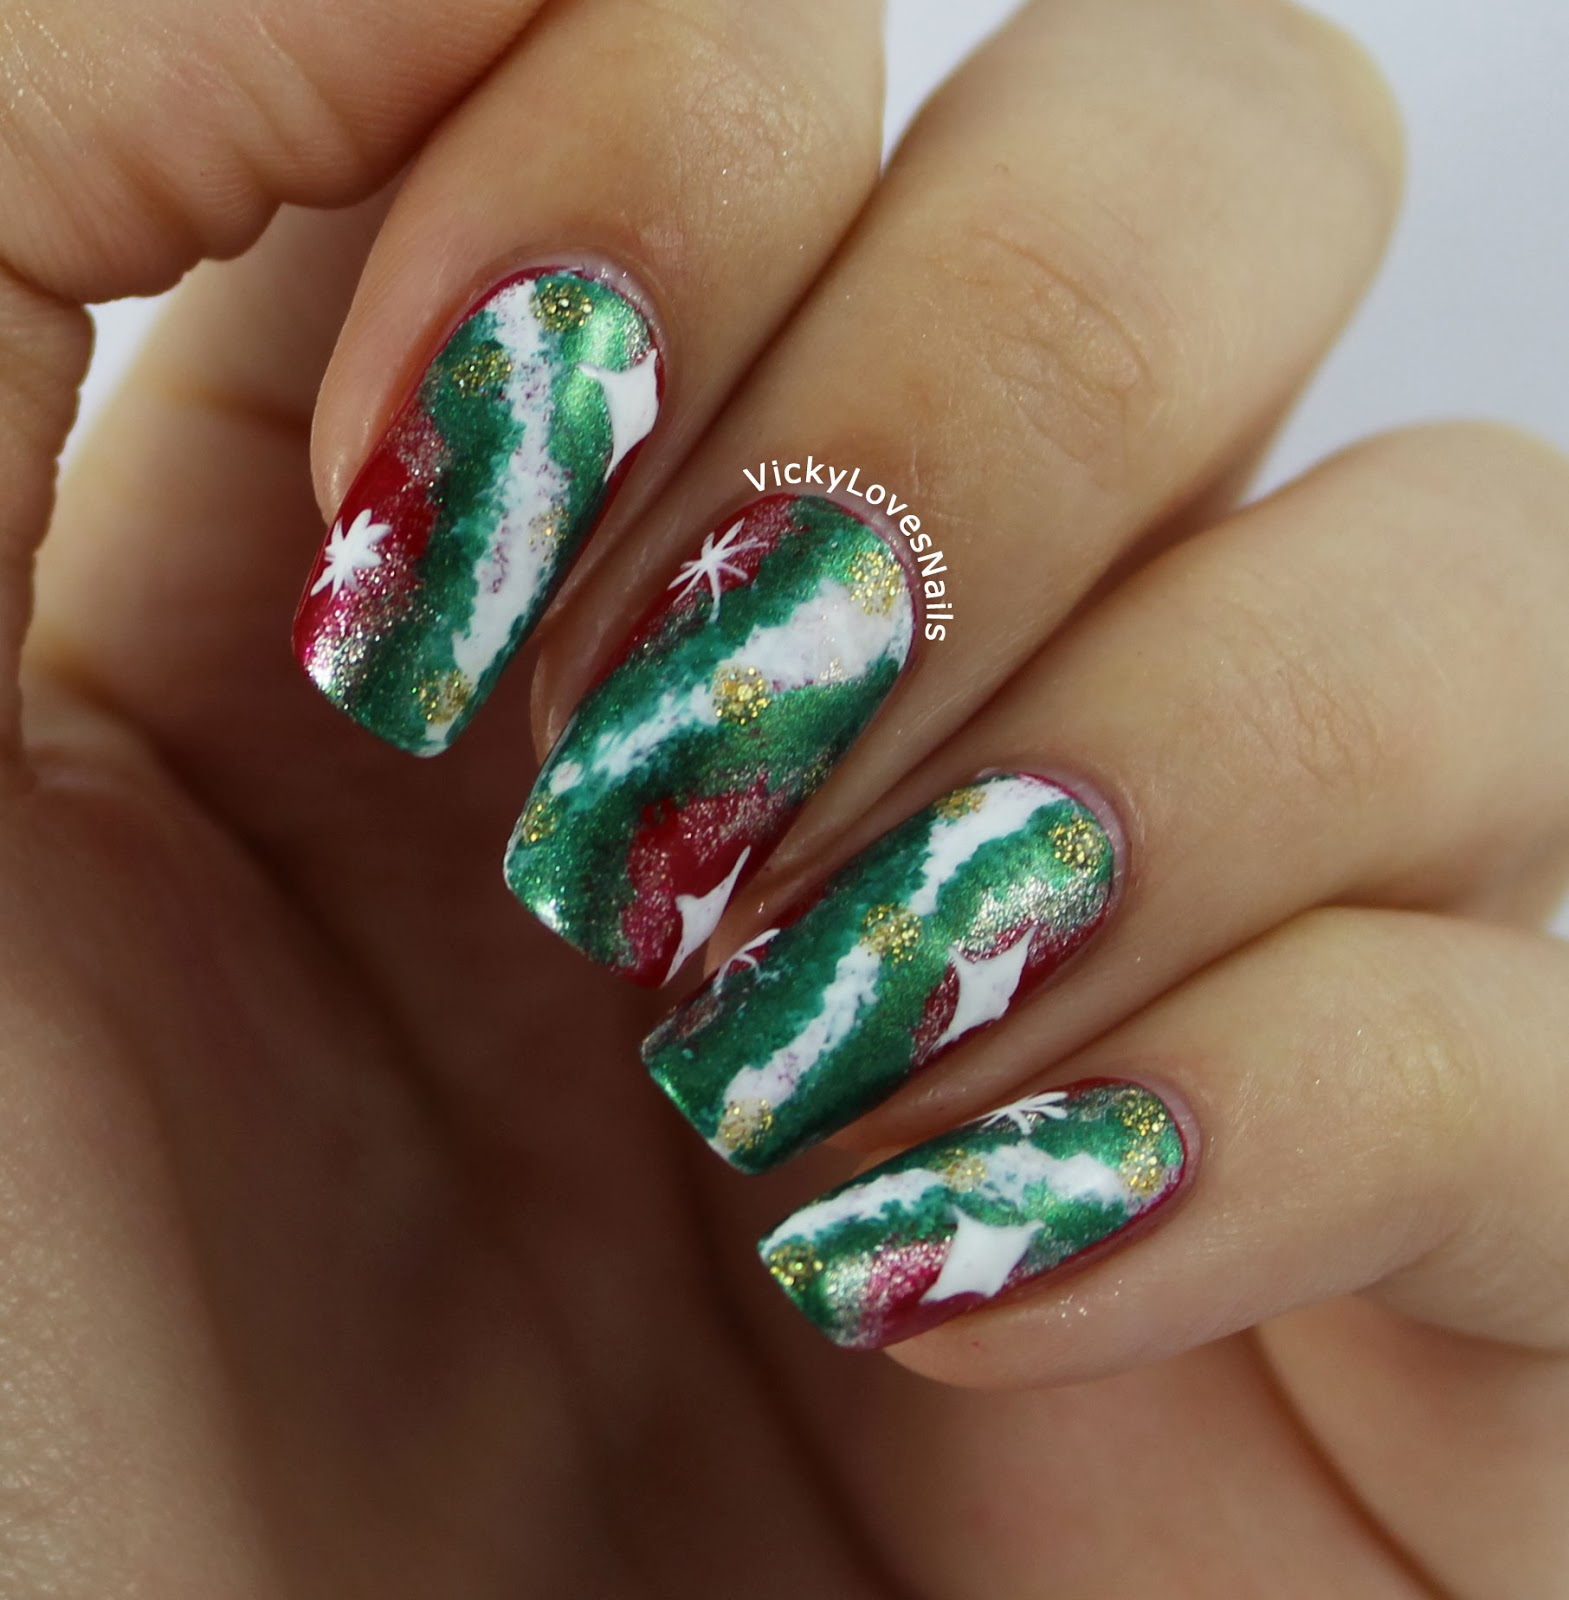 Vicky Loves Nails!: 12 Days Of Christmas Challenge: Day 12 ...